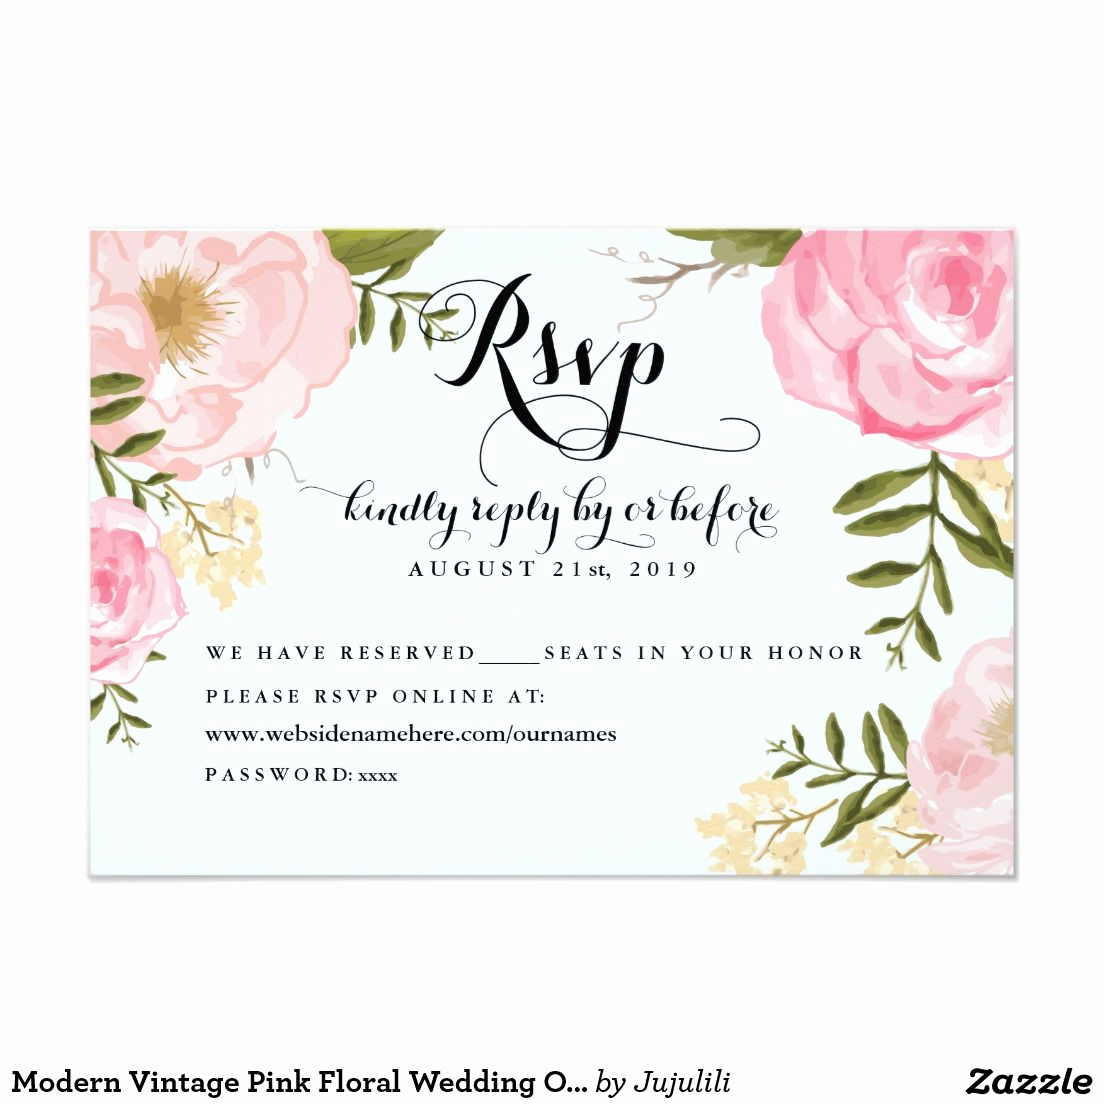 Wedding Invitation Details Card Elegant Modern Vintage Pink Floral Wedding Line Rsvp